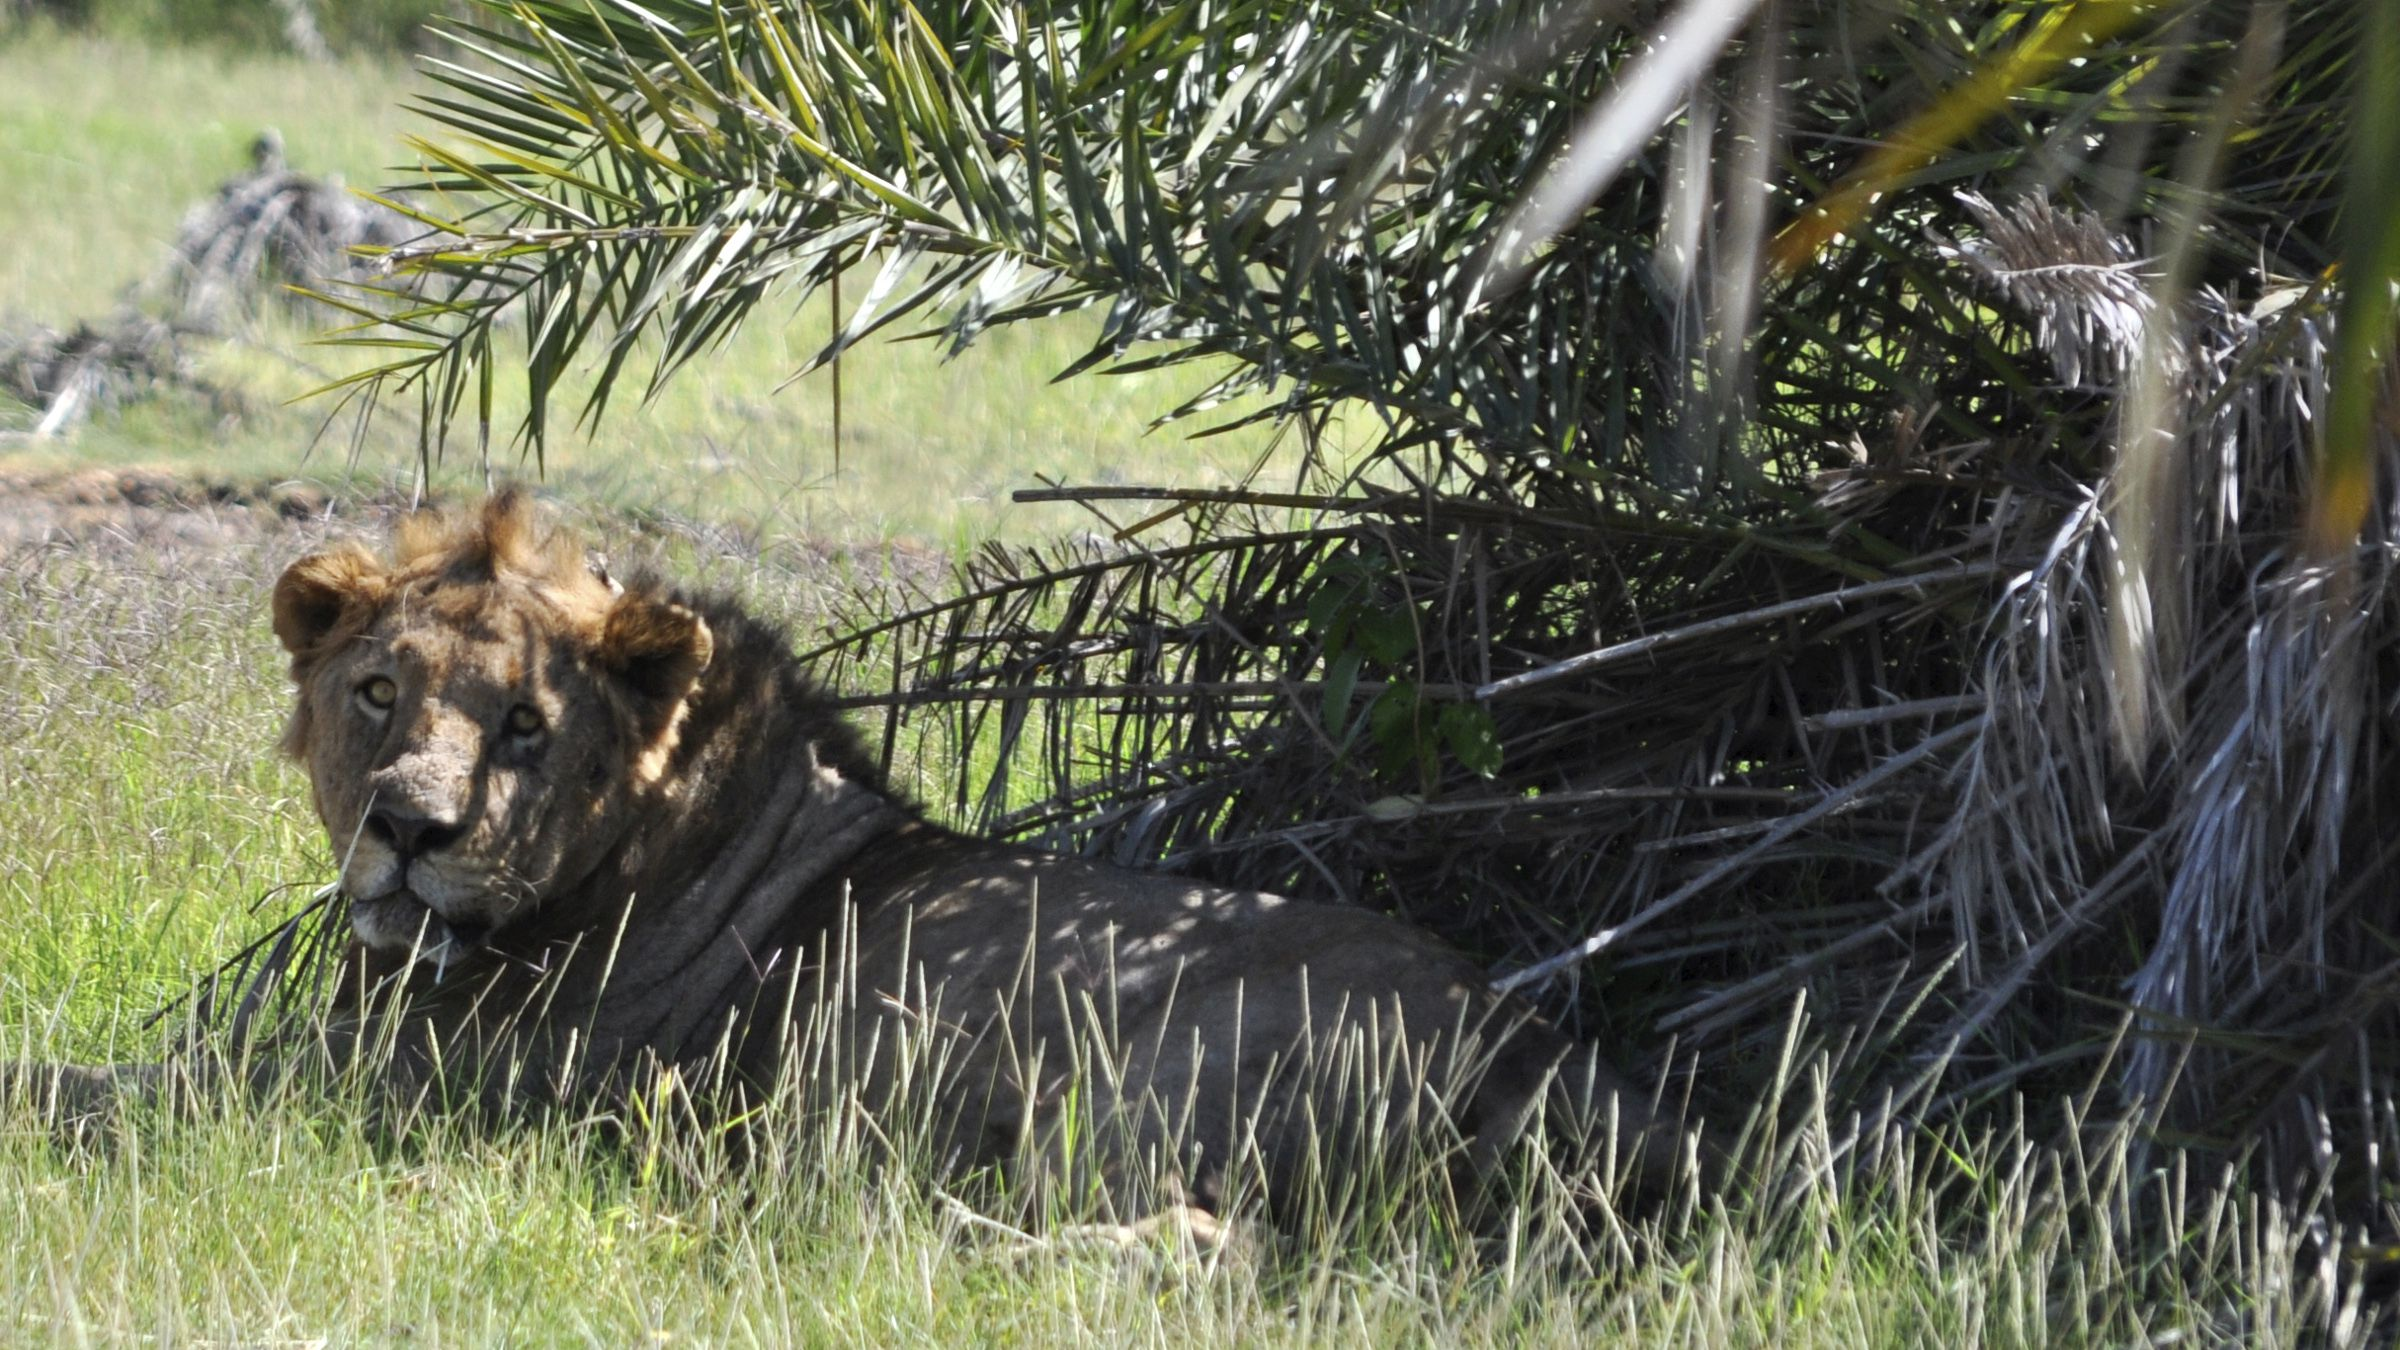 A lion rests in the shade of a tree in the Amboseli national park 290 km (188 miles) southeast of Kenya's capital Nairobi, February 10, 2010.